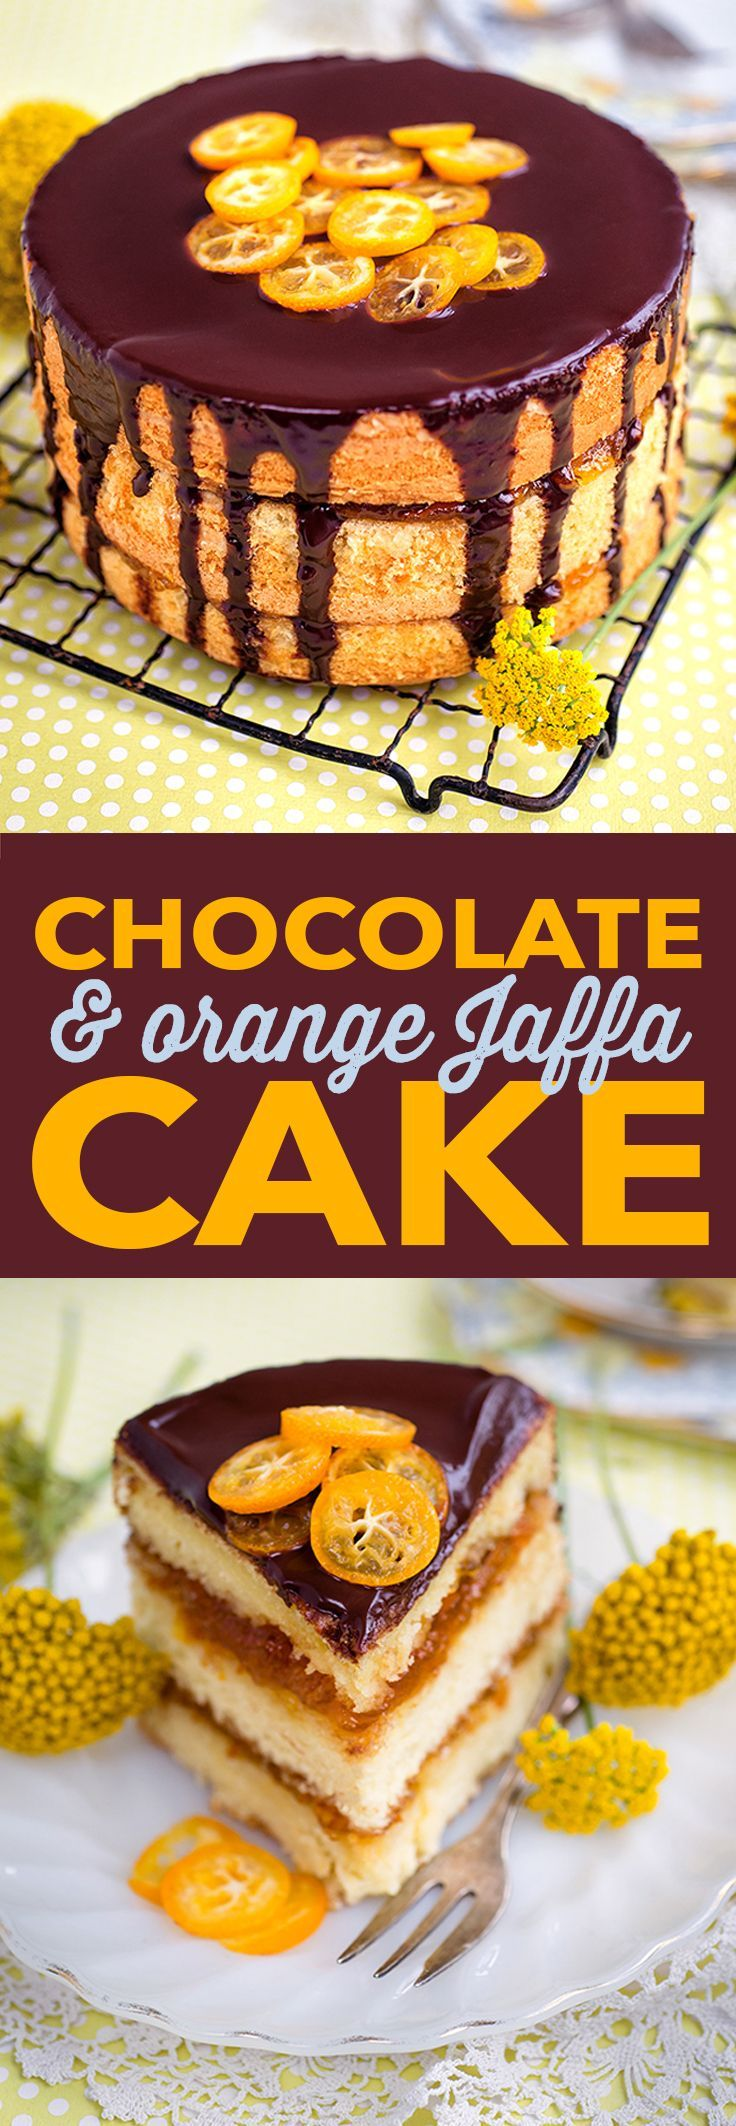 A soft and springy sponge cake filled with orange marmalade and smothered in a chocolate mirror glaze. Easy, delicious & irresistible!